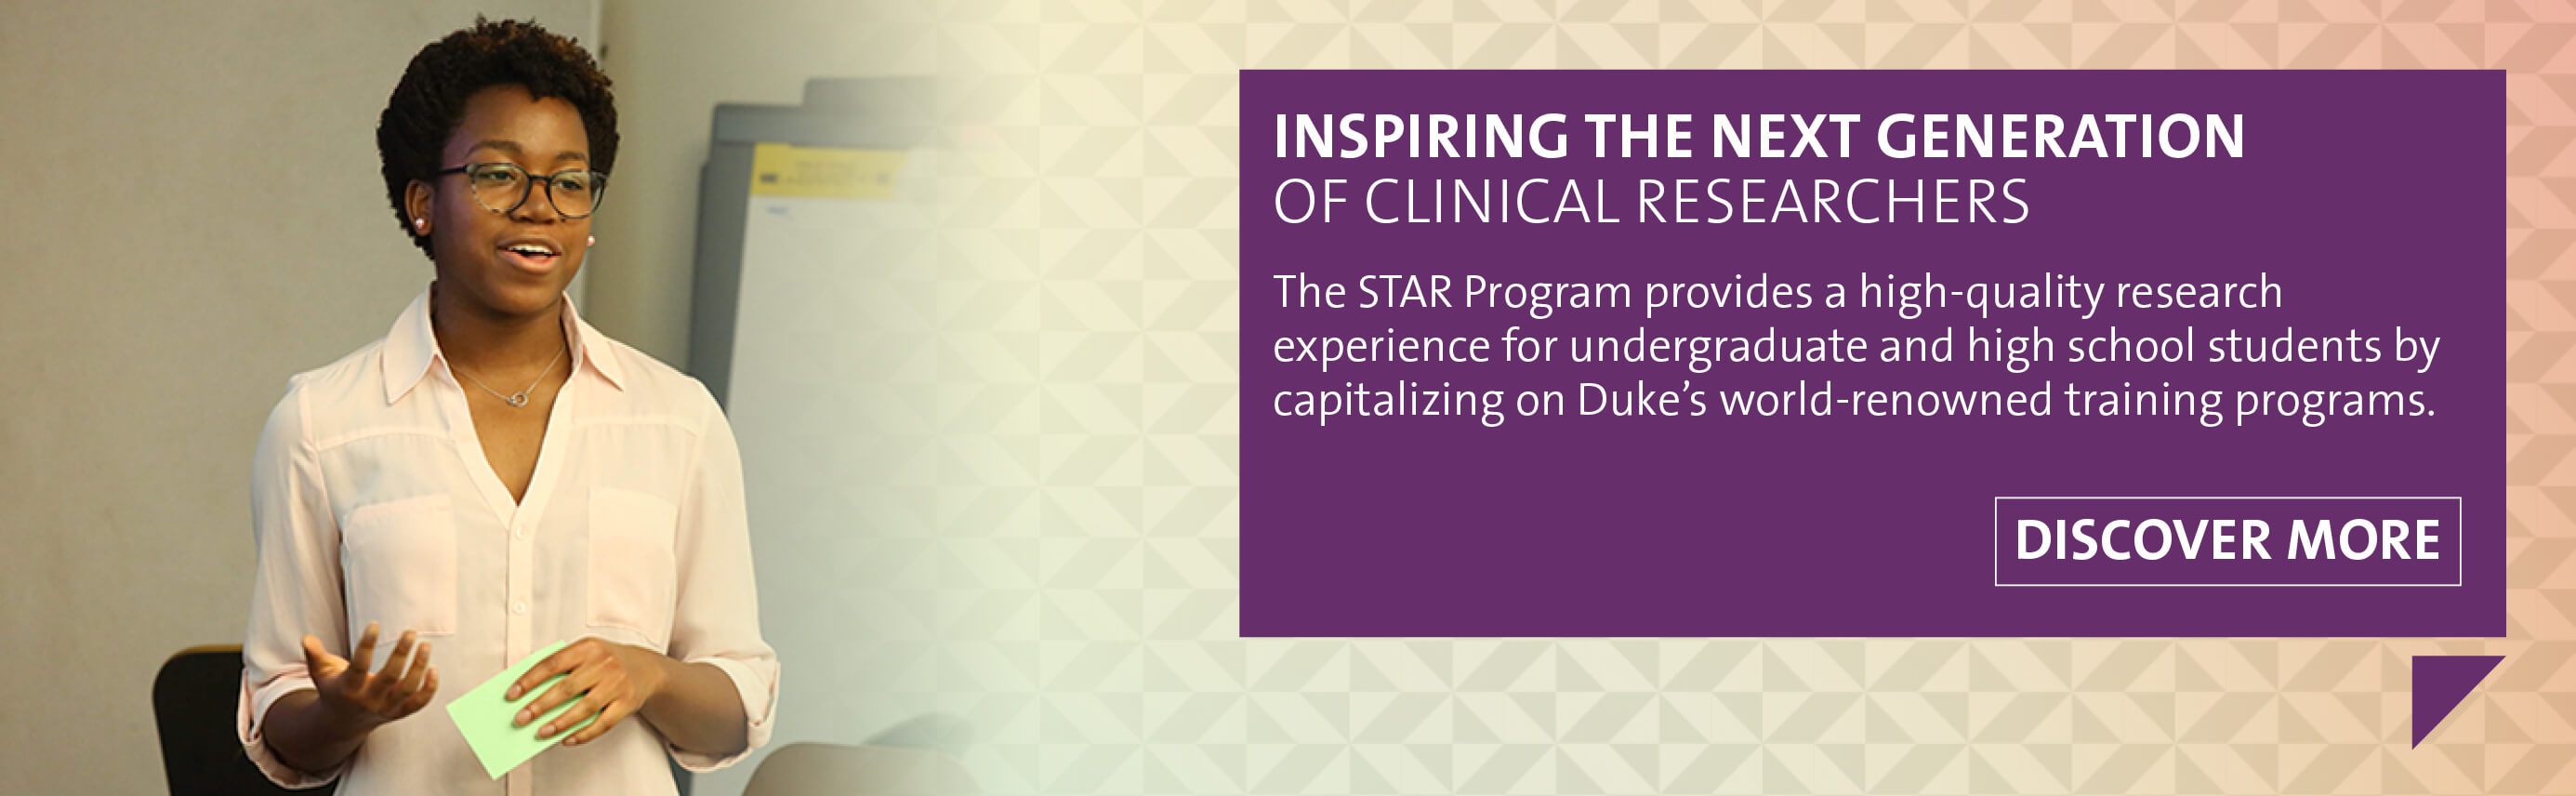 Inspiring the Next Generation of Clinical Researchers. The STAR Program provides a high-quality research experience for undergraduate and high school students by capitalizing on Duke's world-renowned training programs.